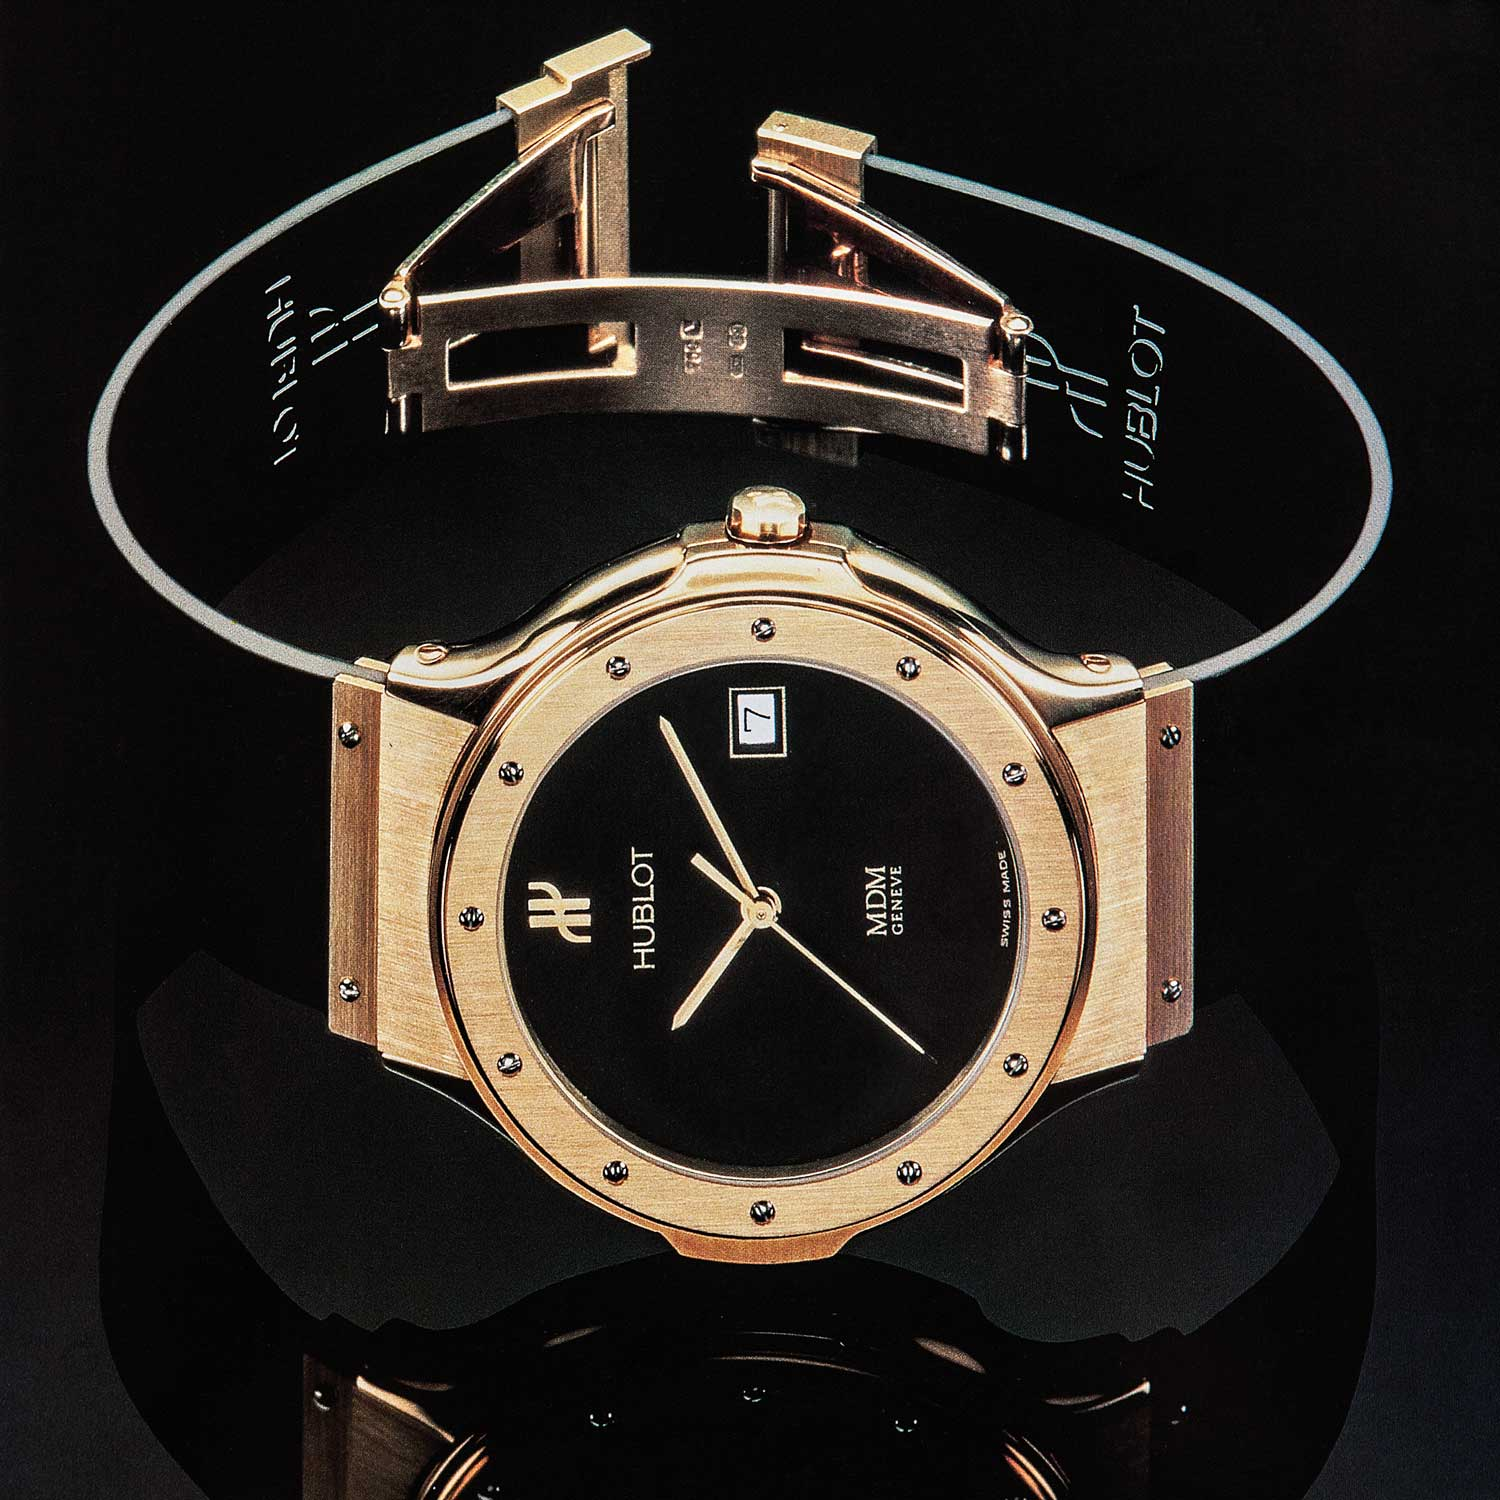 MDM Geneve's original 1980 Hublot, the world's first luxury sports chic watch on a rubber strap